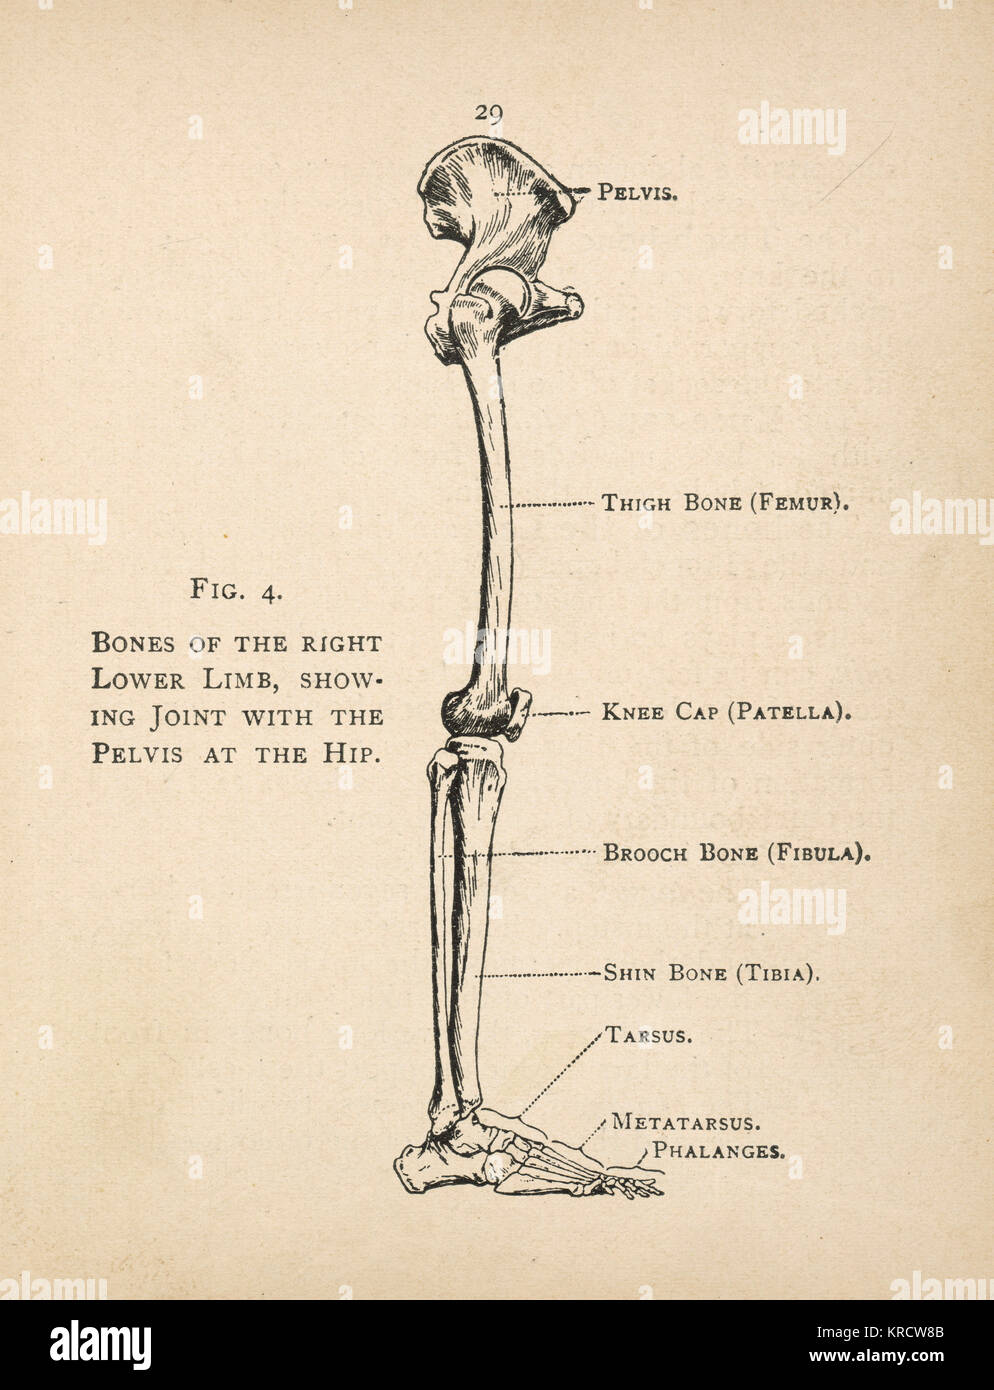 medium resolution of diagram of the bones of the right leg showing the joint with the pelvis at